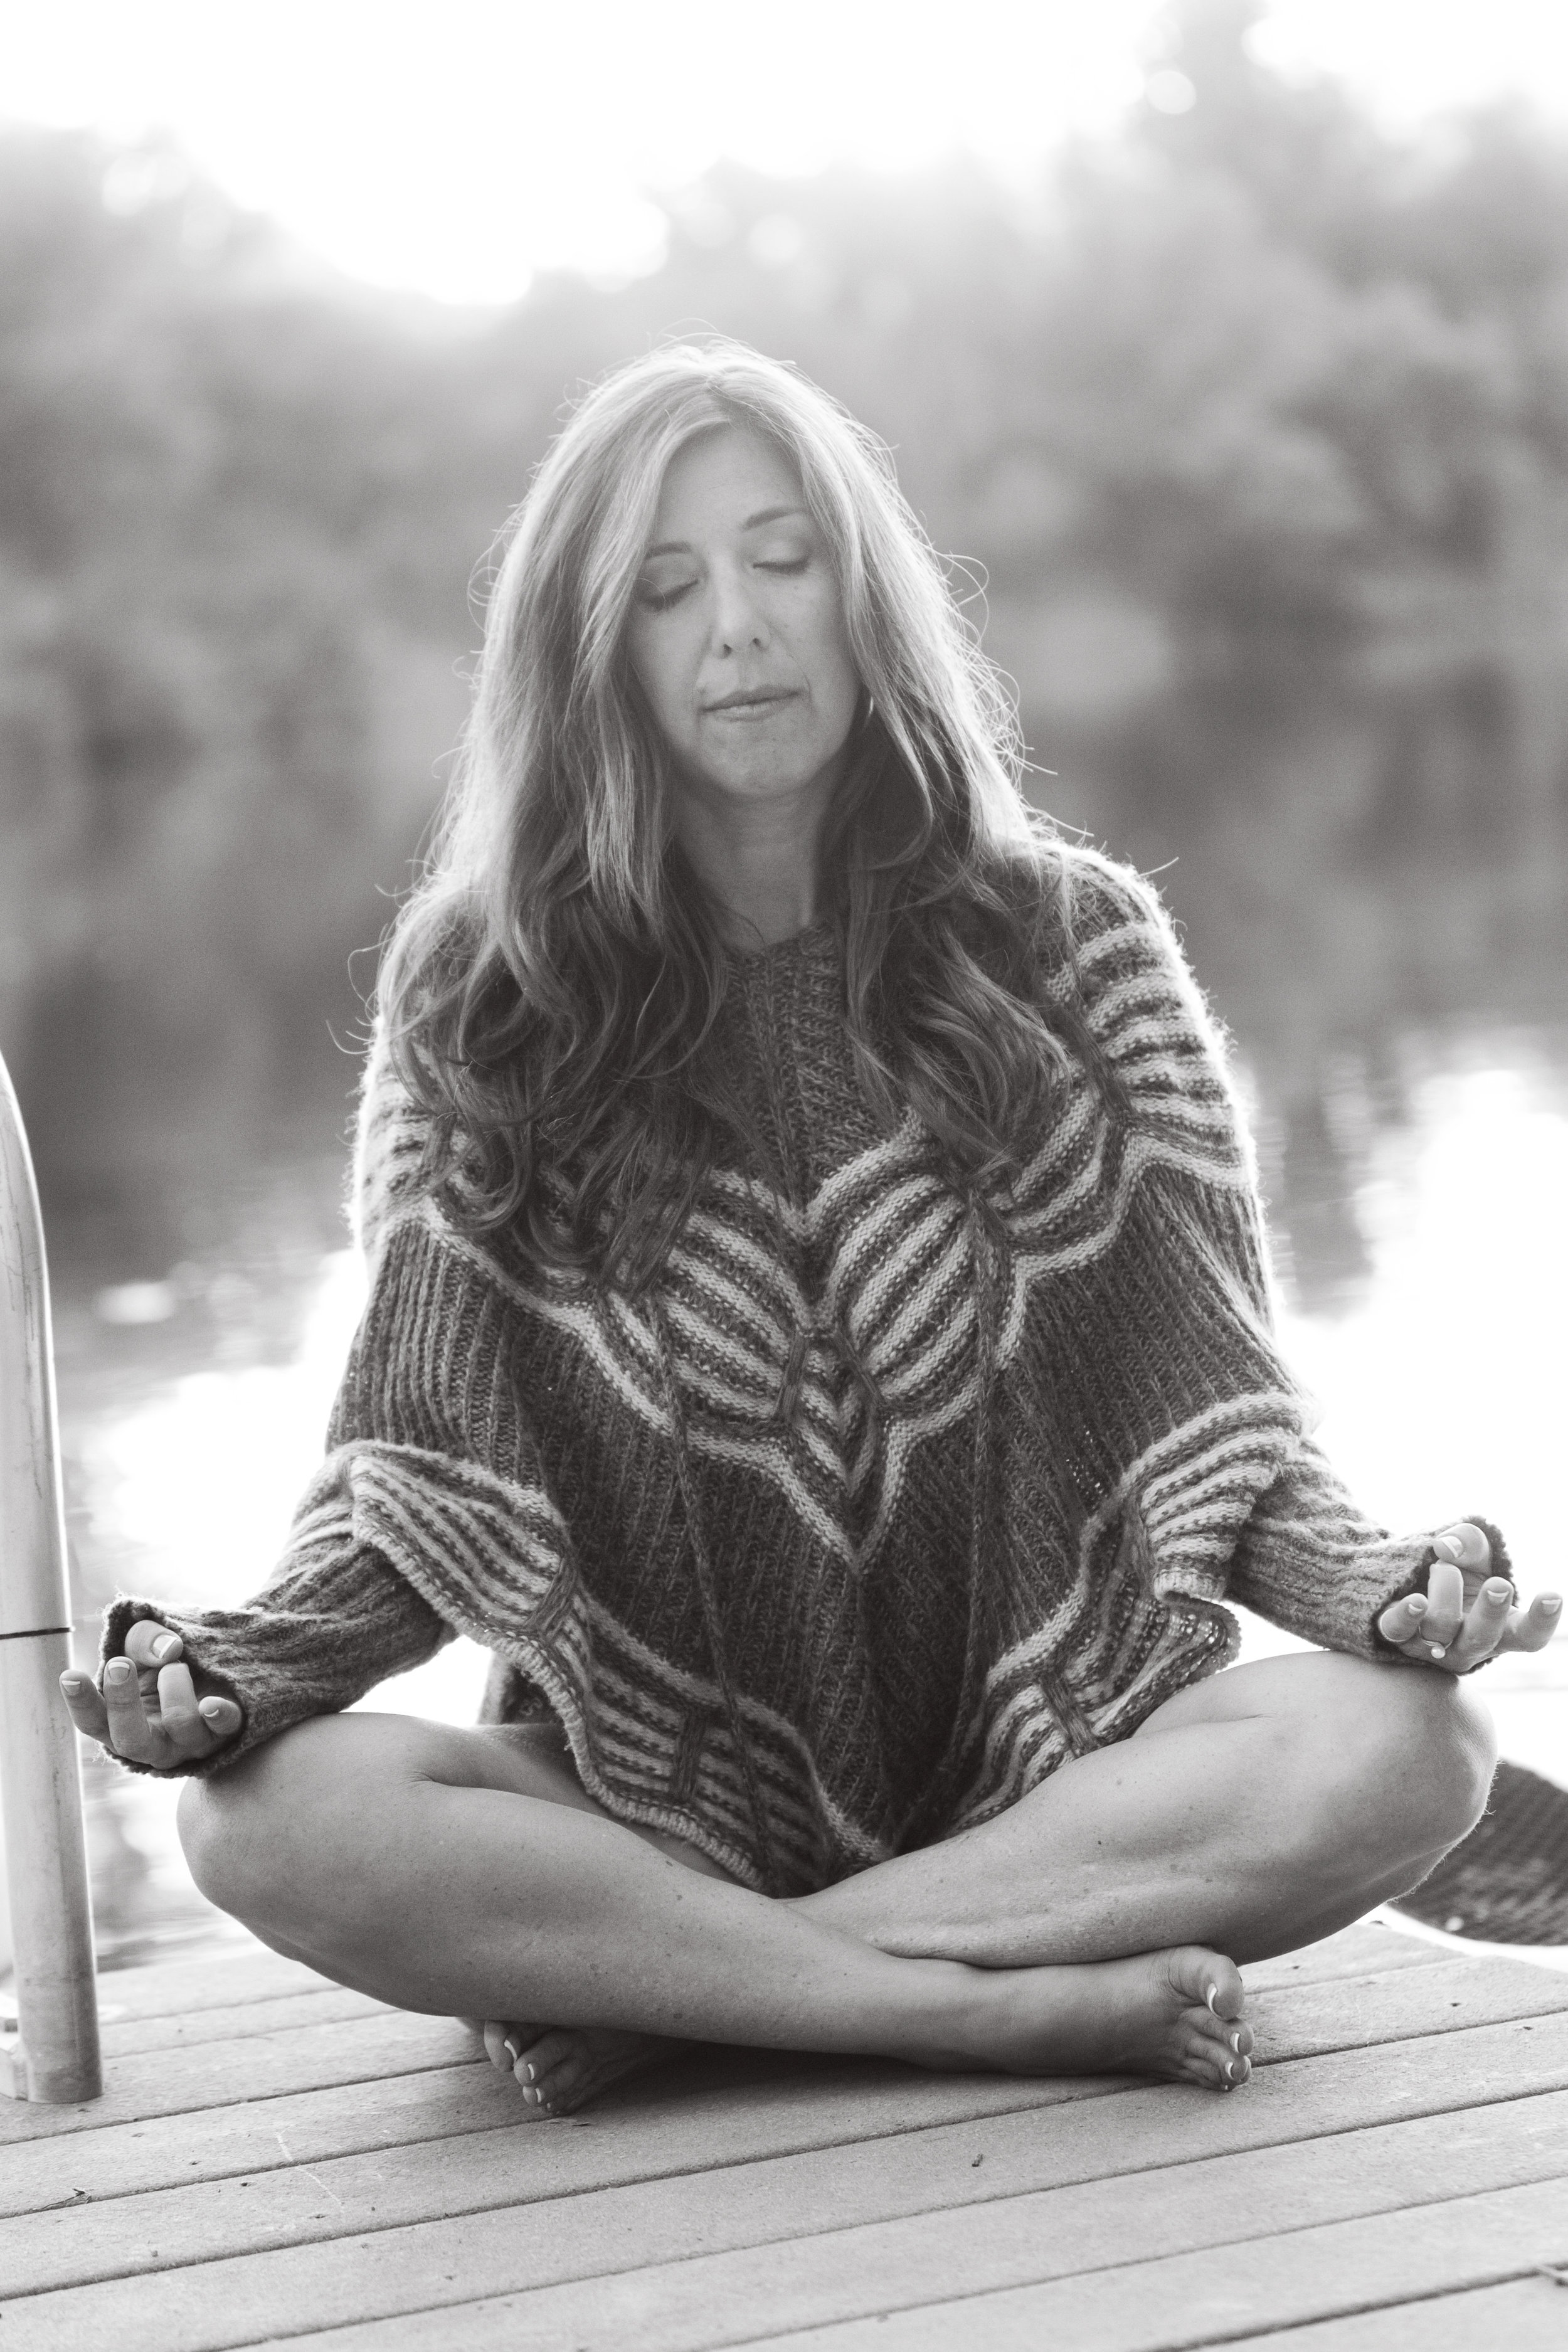 Now seeing clients Friday through Monday at the Yoga Nook in Simi Valley by appointment. - I am so grateful to have returned to my teaching and healing practice. These days I am immersed in Yoga and A.I.M. I love being back to teaching and taking private clients. A.I.M. stands for Awareness, Integration, Movement and is a subtle body work technique that works in a parasympathetic state to relieve pain and misalignments in the body. The work is done both privately and in group settings. In private settings there is hands-on release work on a massage table fully clothed. You can expect to walk or stand for viewing of your body patterns and tight areas before work on the table begins. None of the movements are painful but work in amazingly simple ways to release chronically tight patterns in the body. I am very excited to be accepting clients for the work and the response has been amazing. I have been receiving great pleasure in helping others release pain and habitual patterns that cause pain.